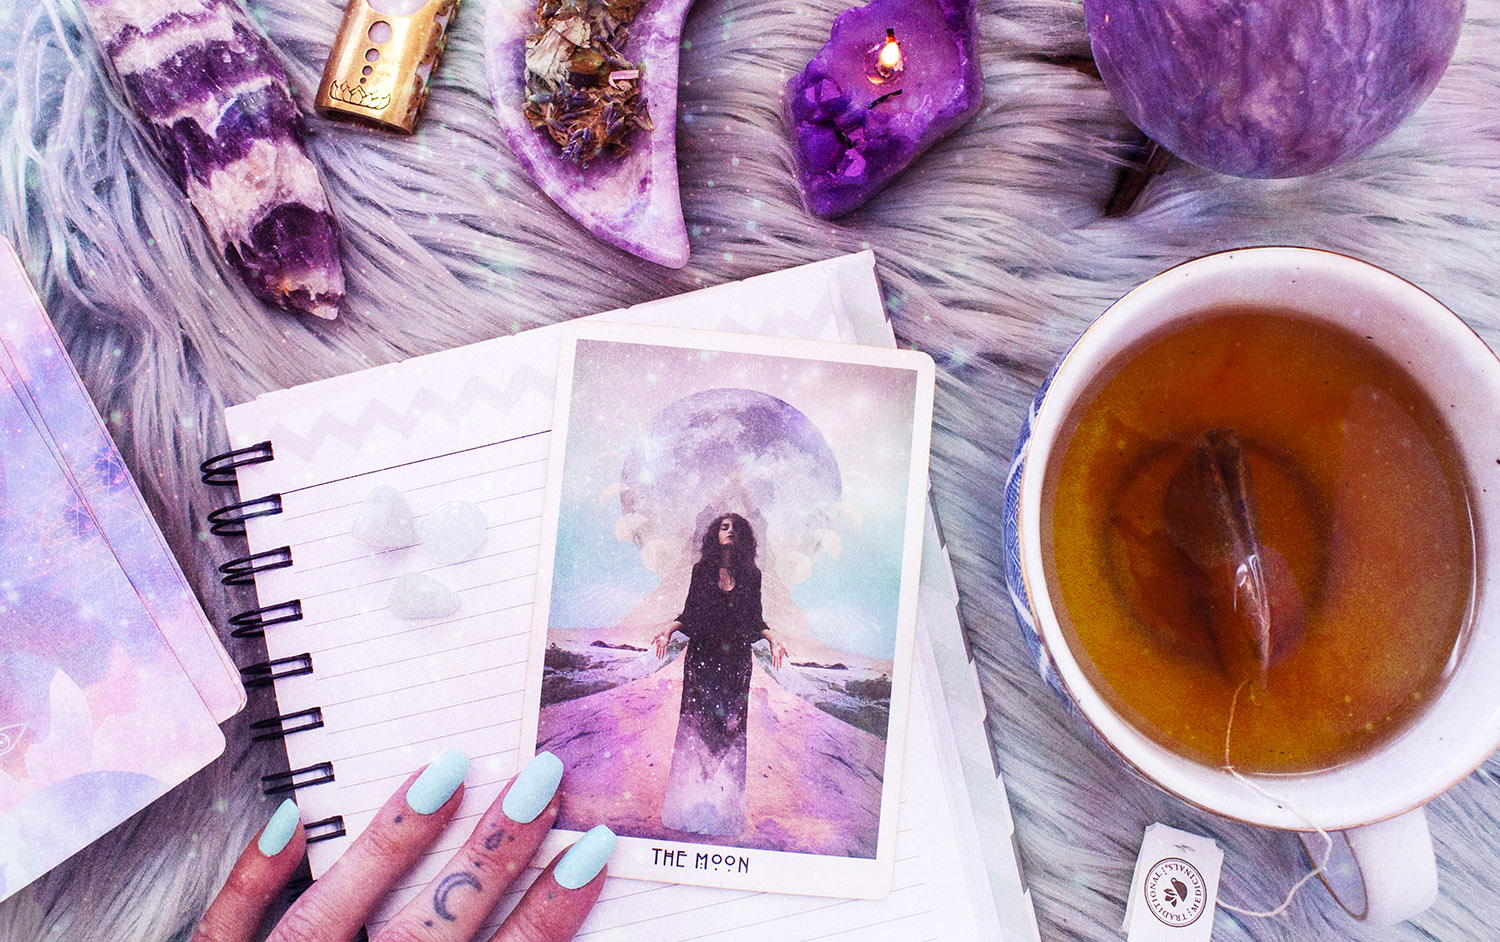 pisces season rituals rituals for pisces season pisces ritual and card spread